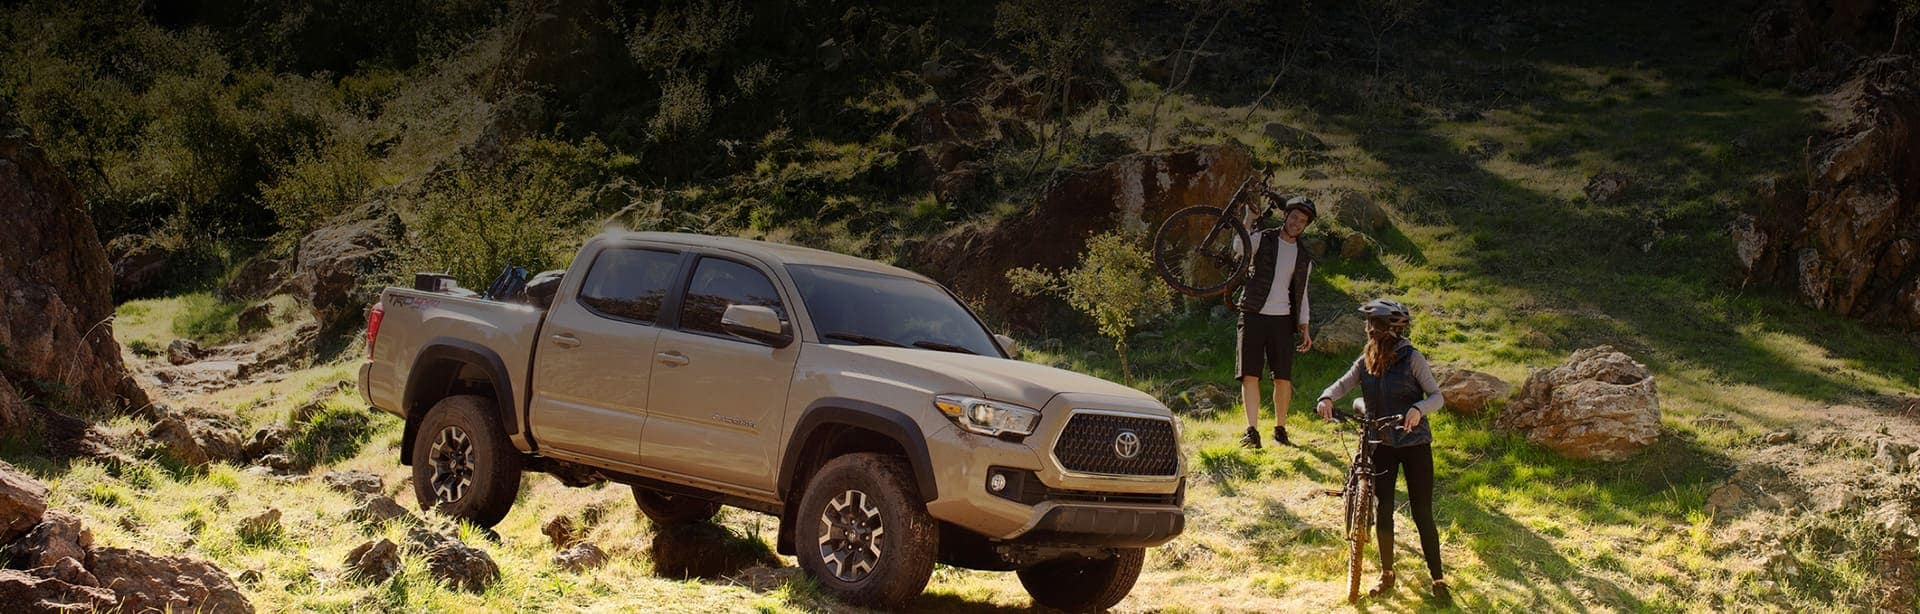 Two cyclists outdoors on a hill next to their Toyota Tacoma